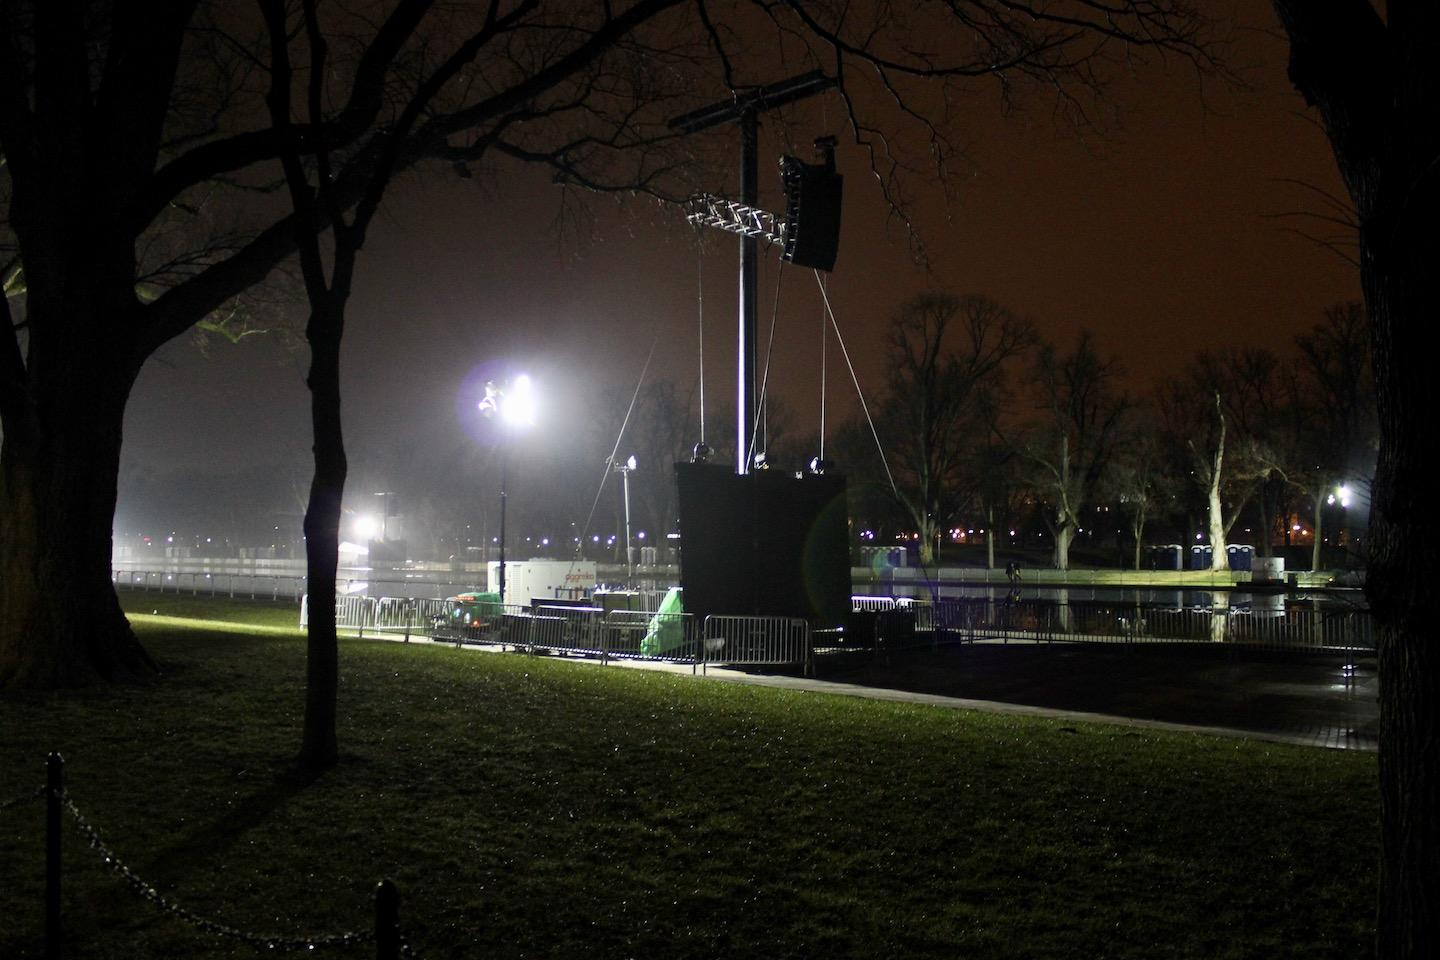 Prepping+The+Mall..+there+are+sets+of+speakers+like+this+every+250+feet+in+order+to+make+sure+everyone+hears+it+all+come+Friday+morning.++